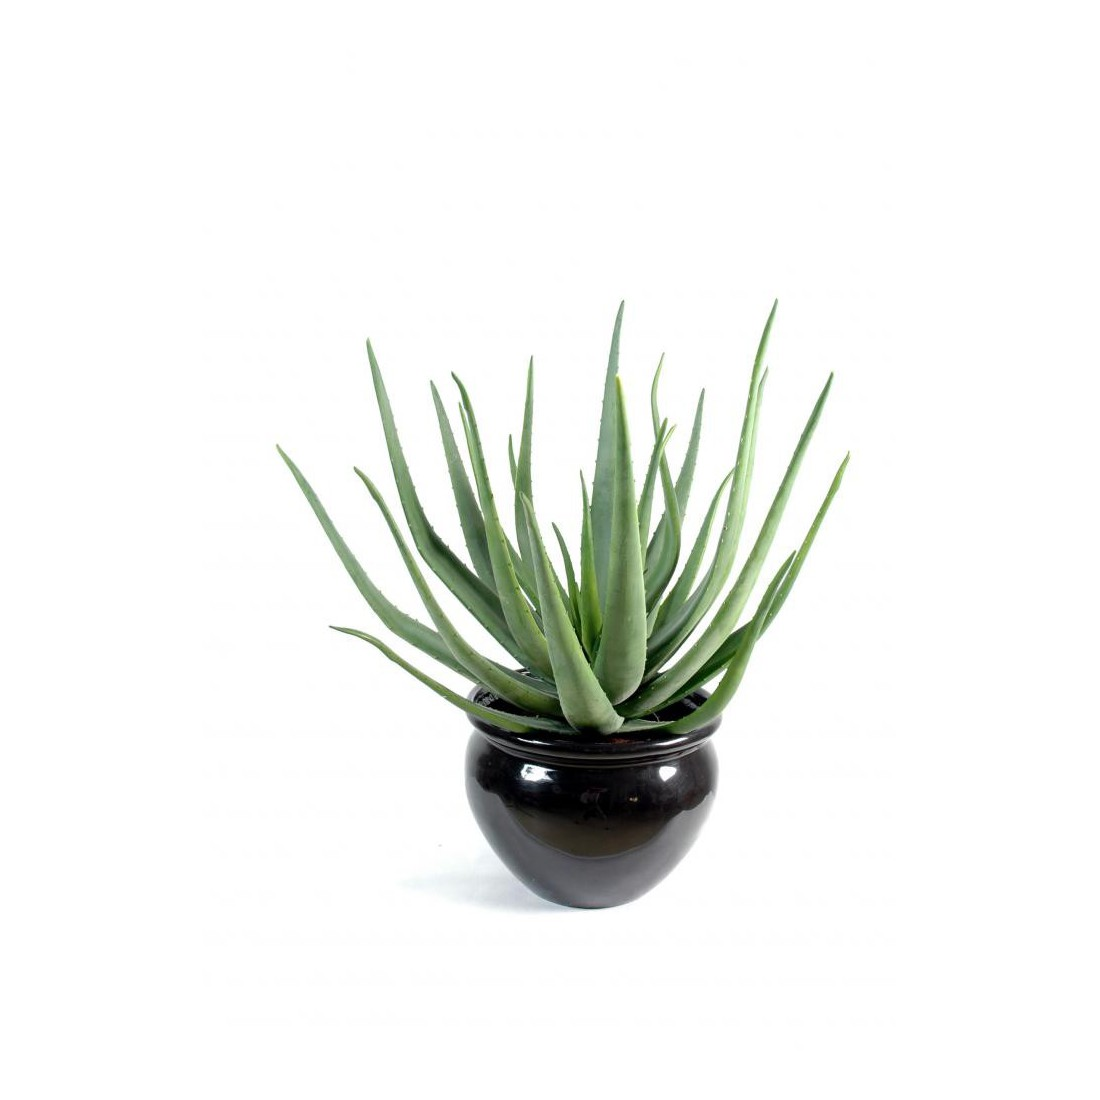 aloevera artificiel 55 et 70cm cactus plantes grasses cactus et plantes grasses artificiels. Black Bedroom Furniture Sets. Home Design Ideas